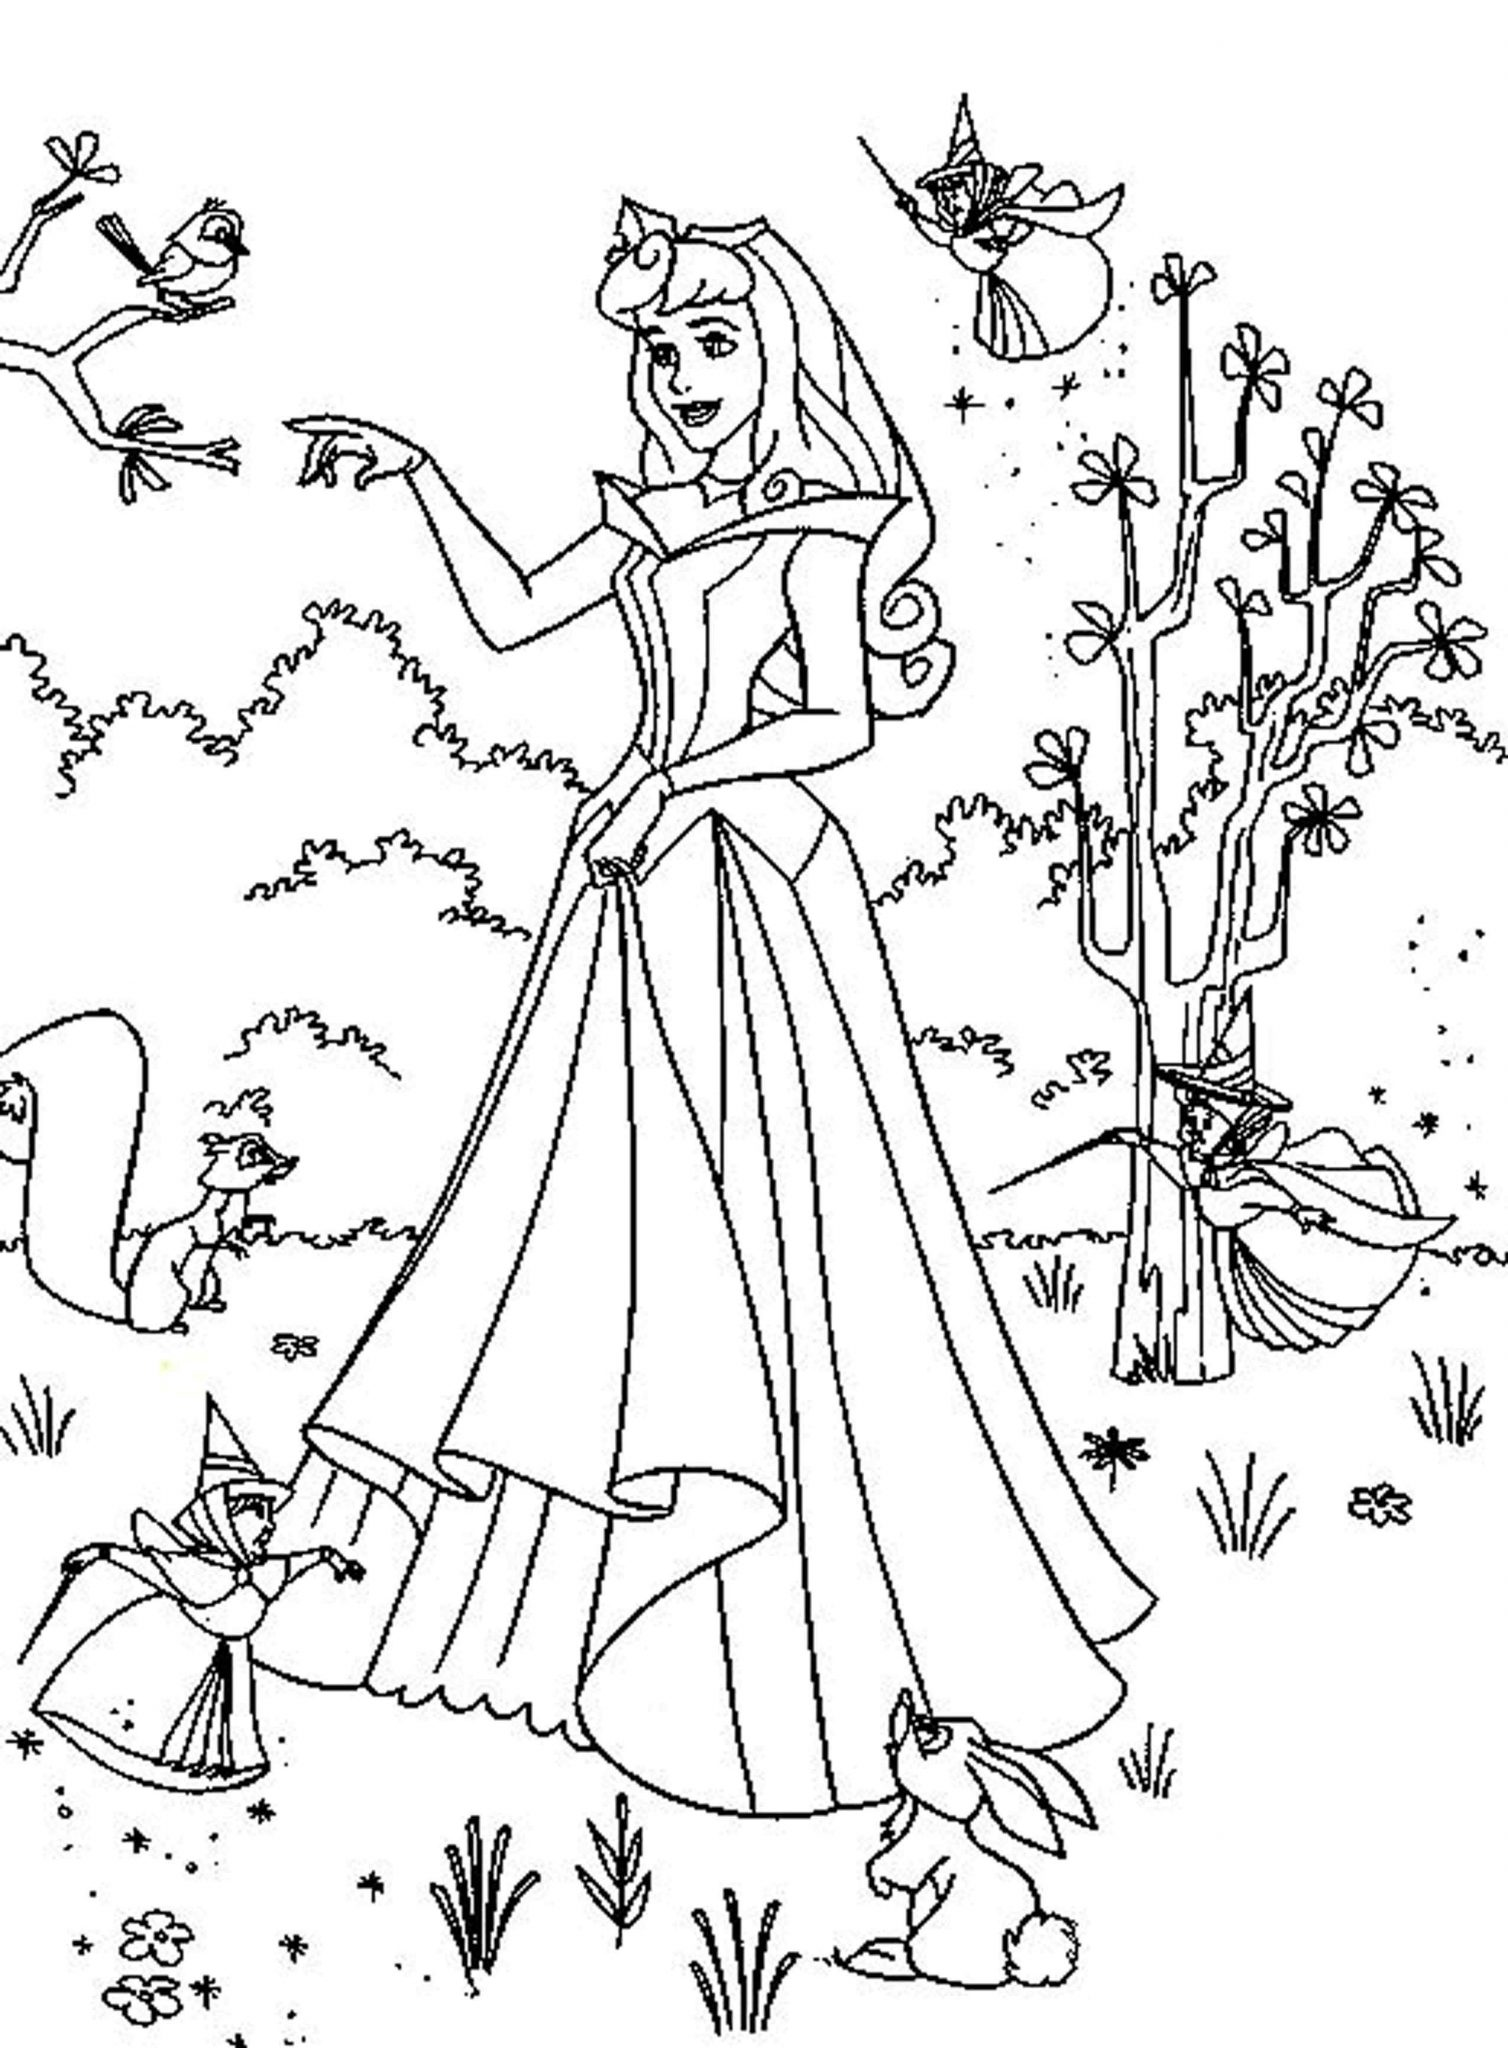 princesses coloring pages printable princess tiana coloring pages for kids cool2bkids princesses coloring pages